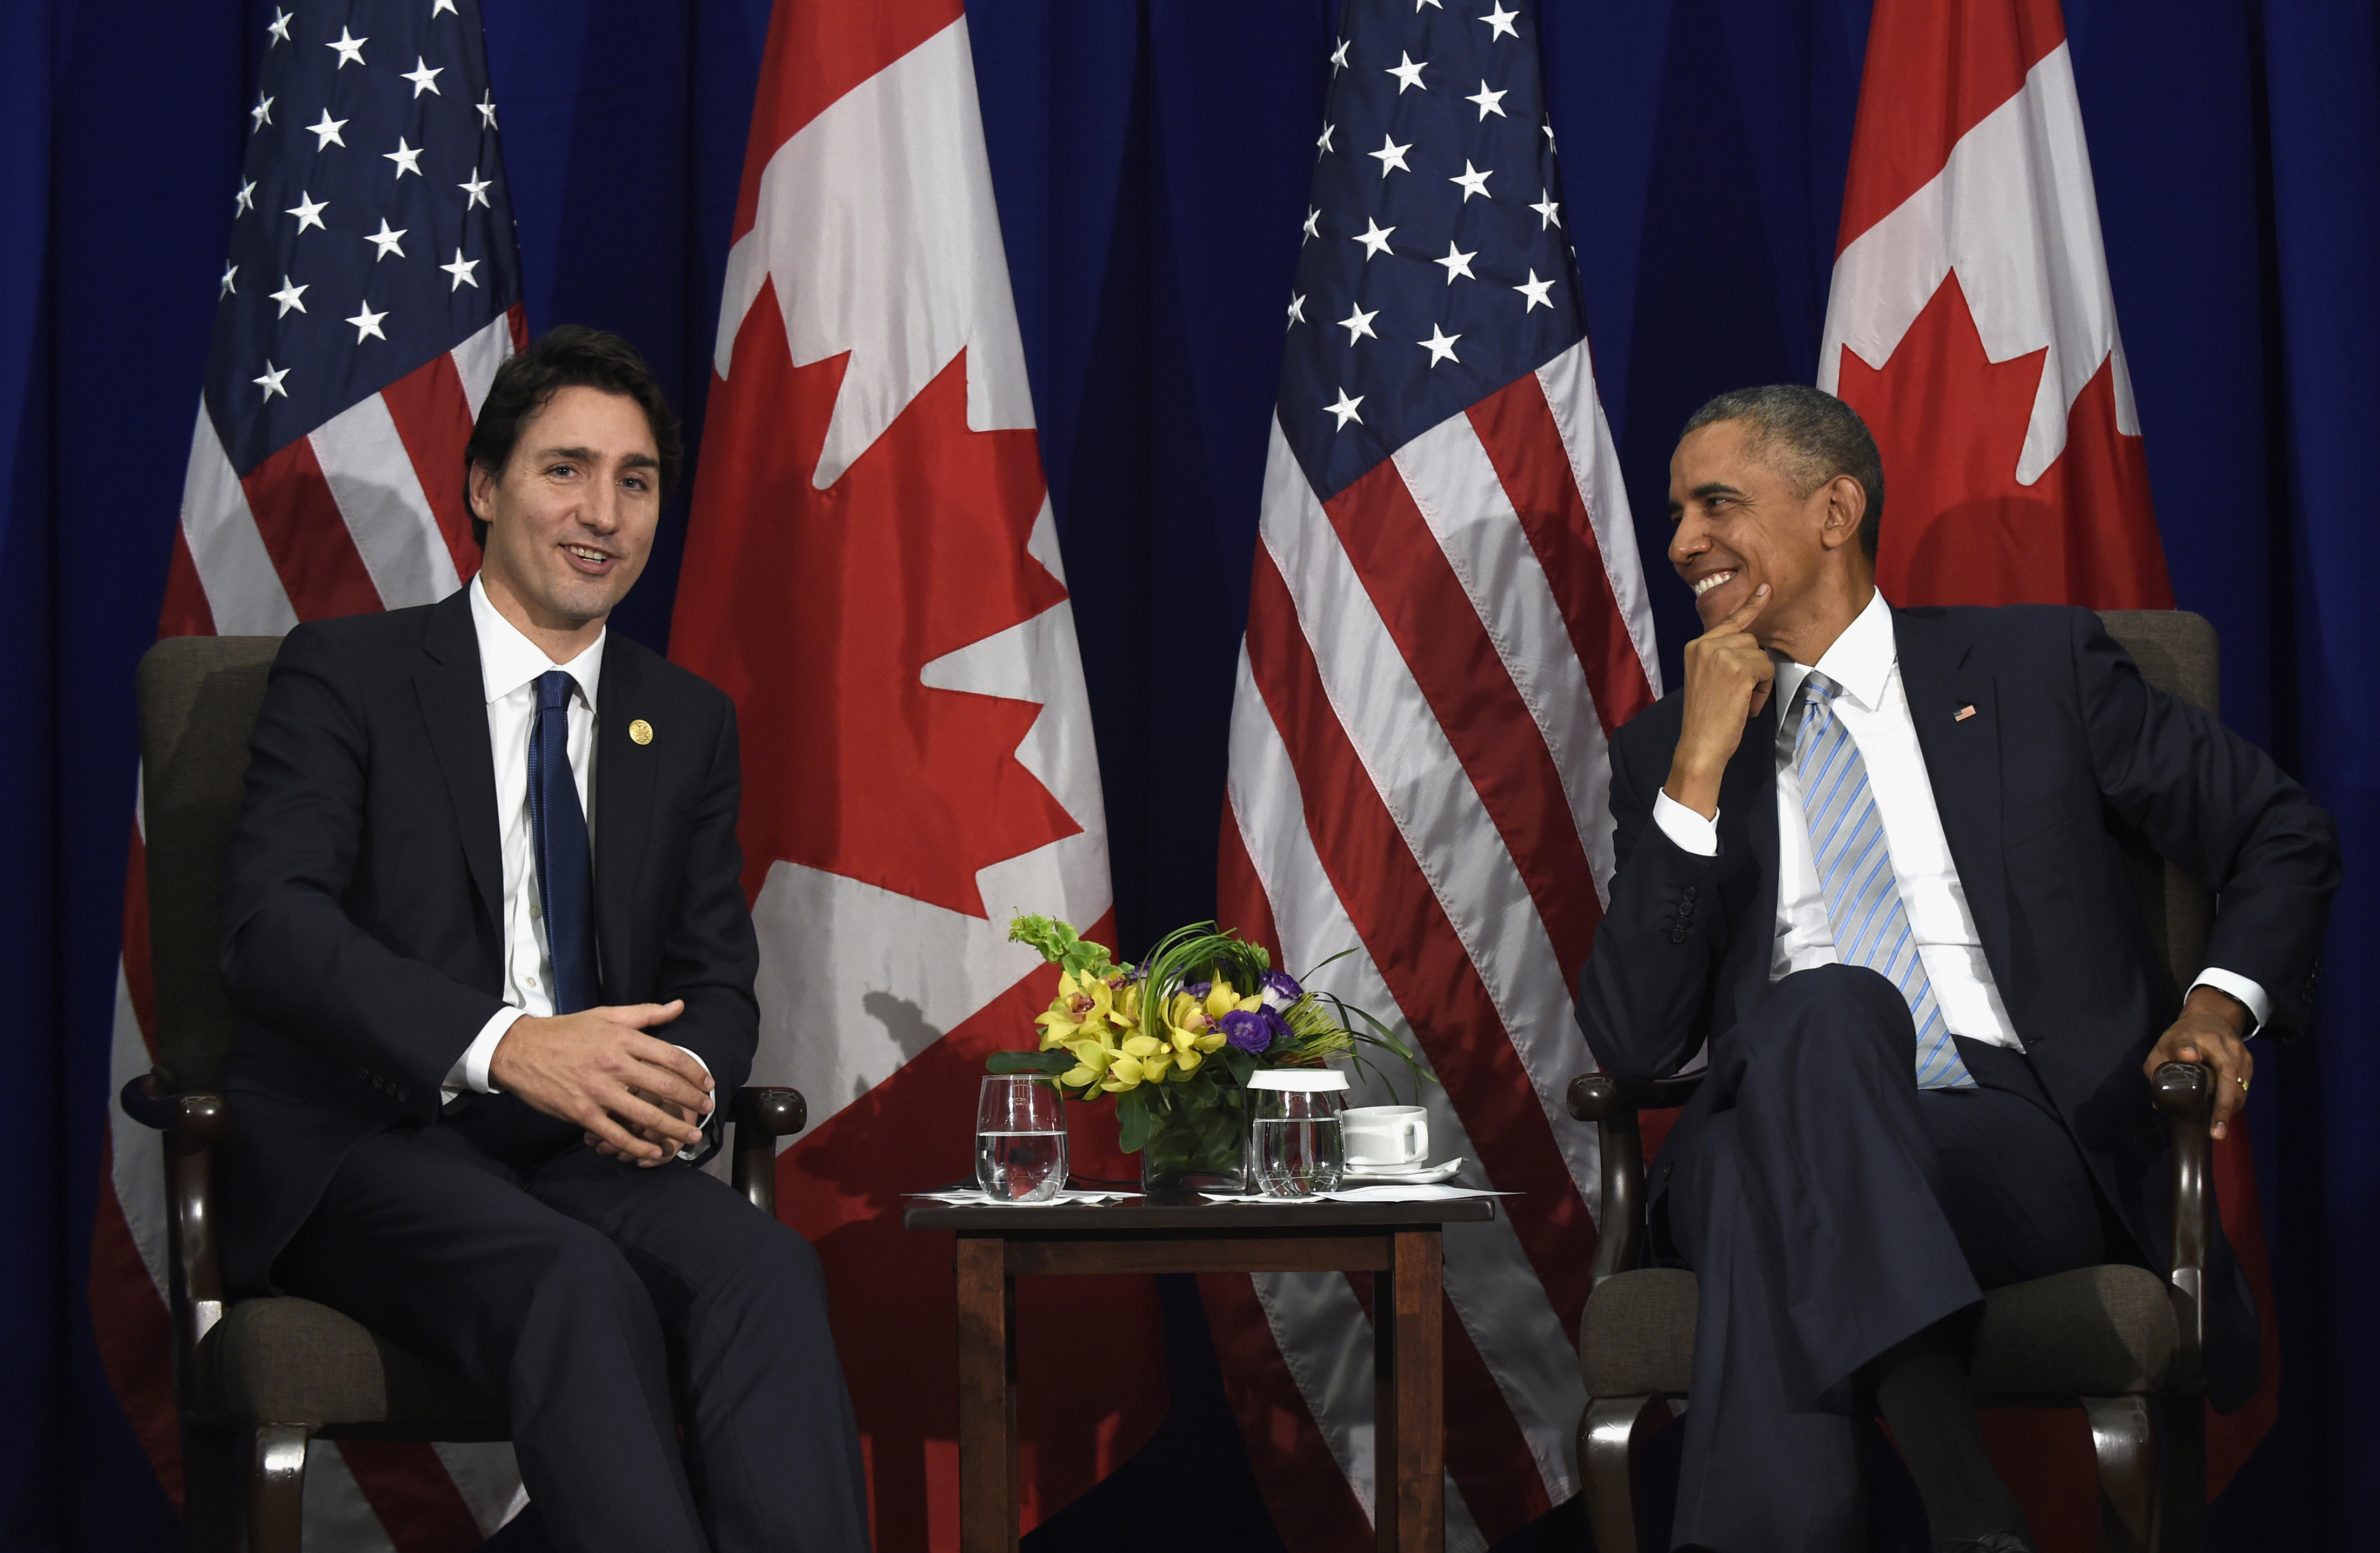 trudeau bringing canadian star power to white house | wtop